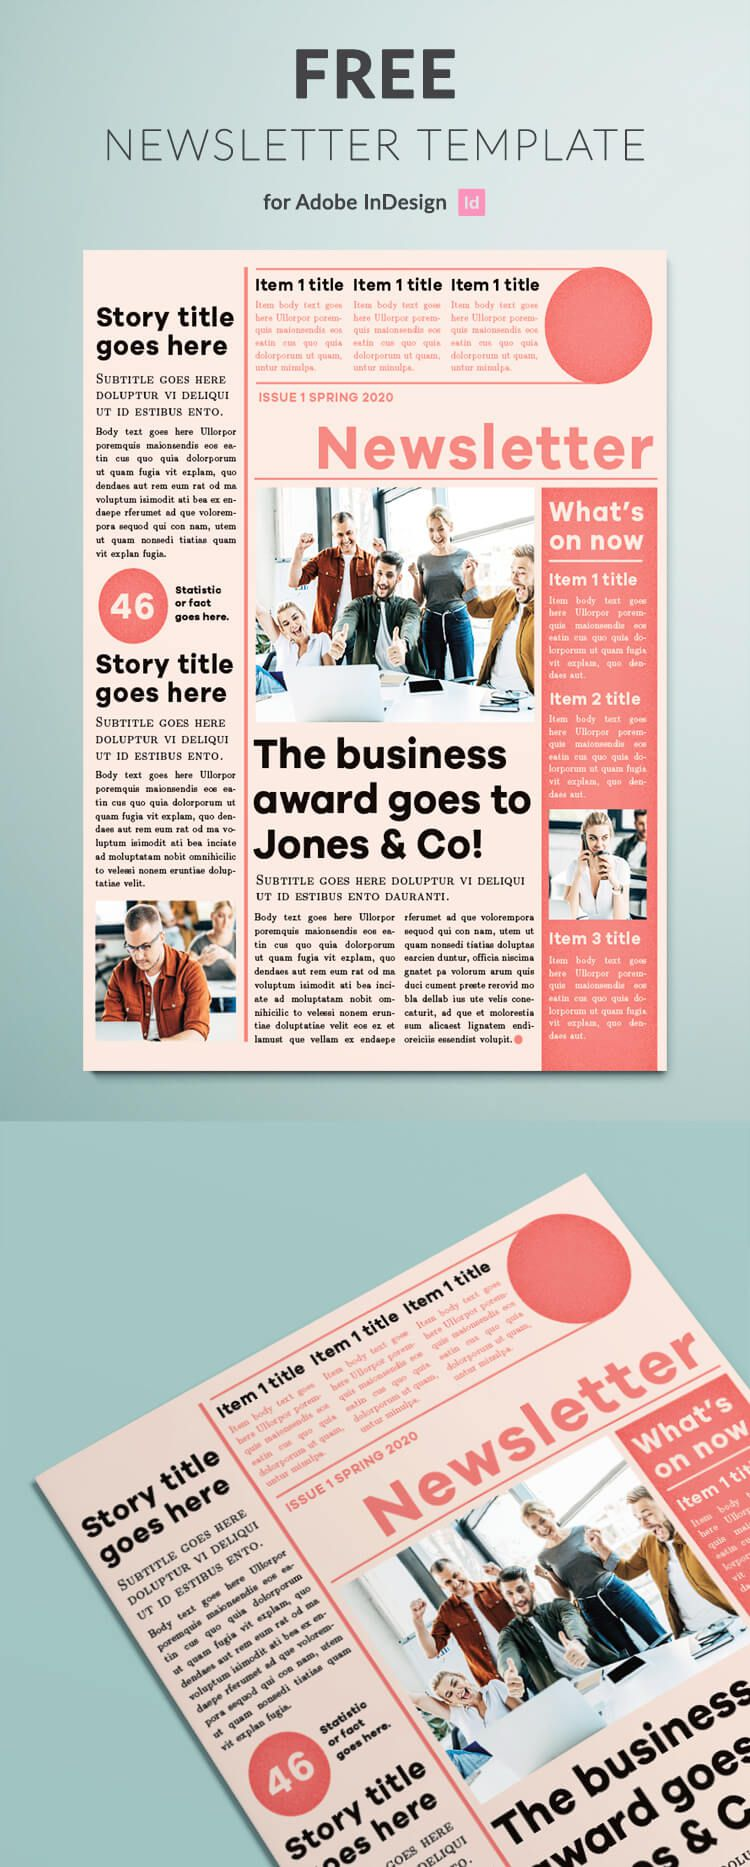 008 Best Adobe Indesign Newsletter Template Free Download Concept Full